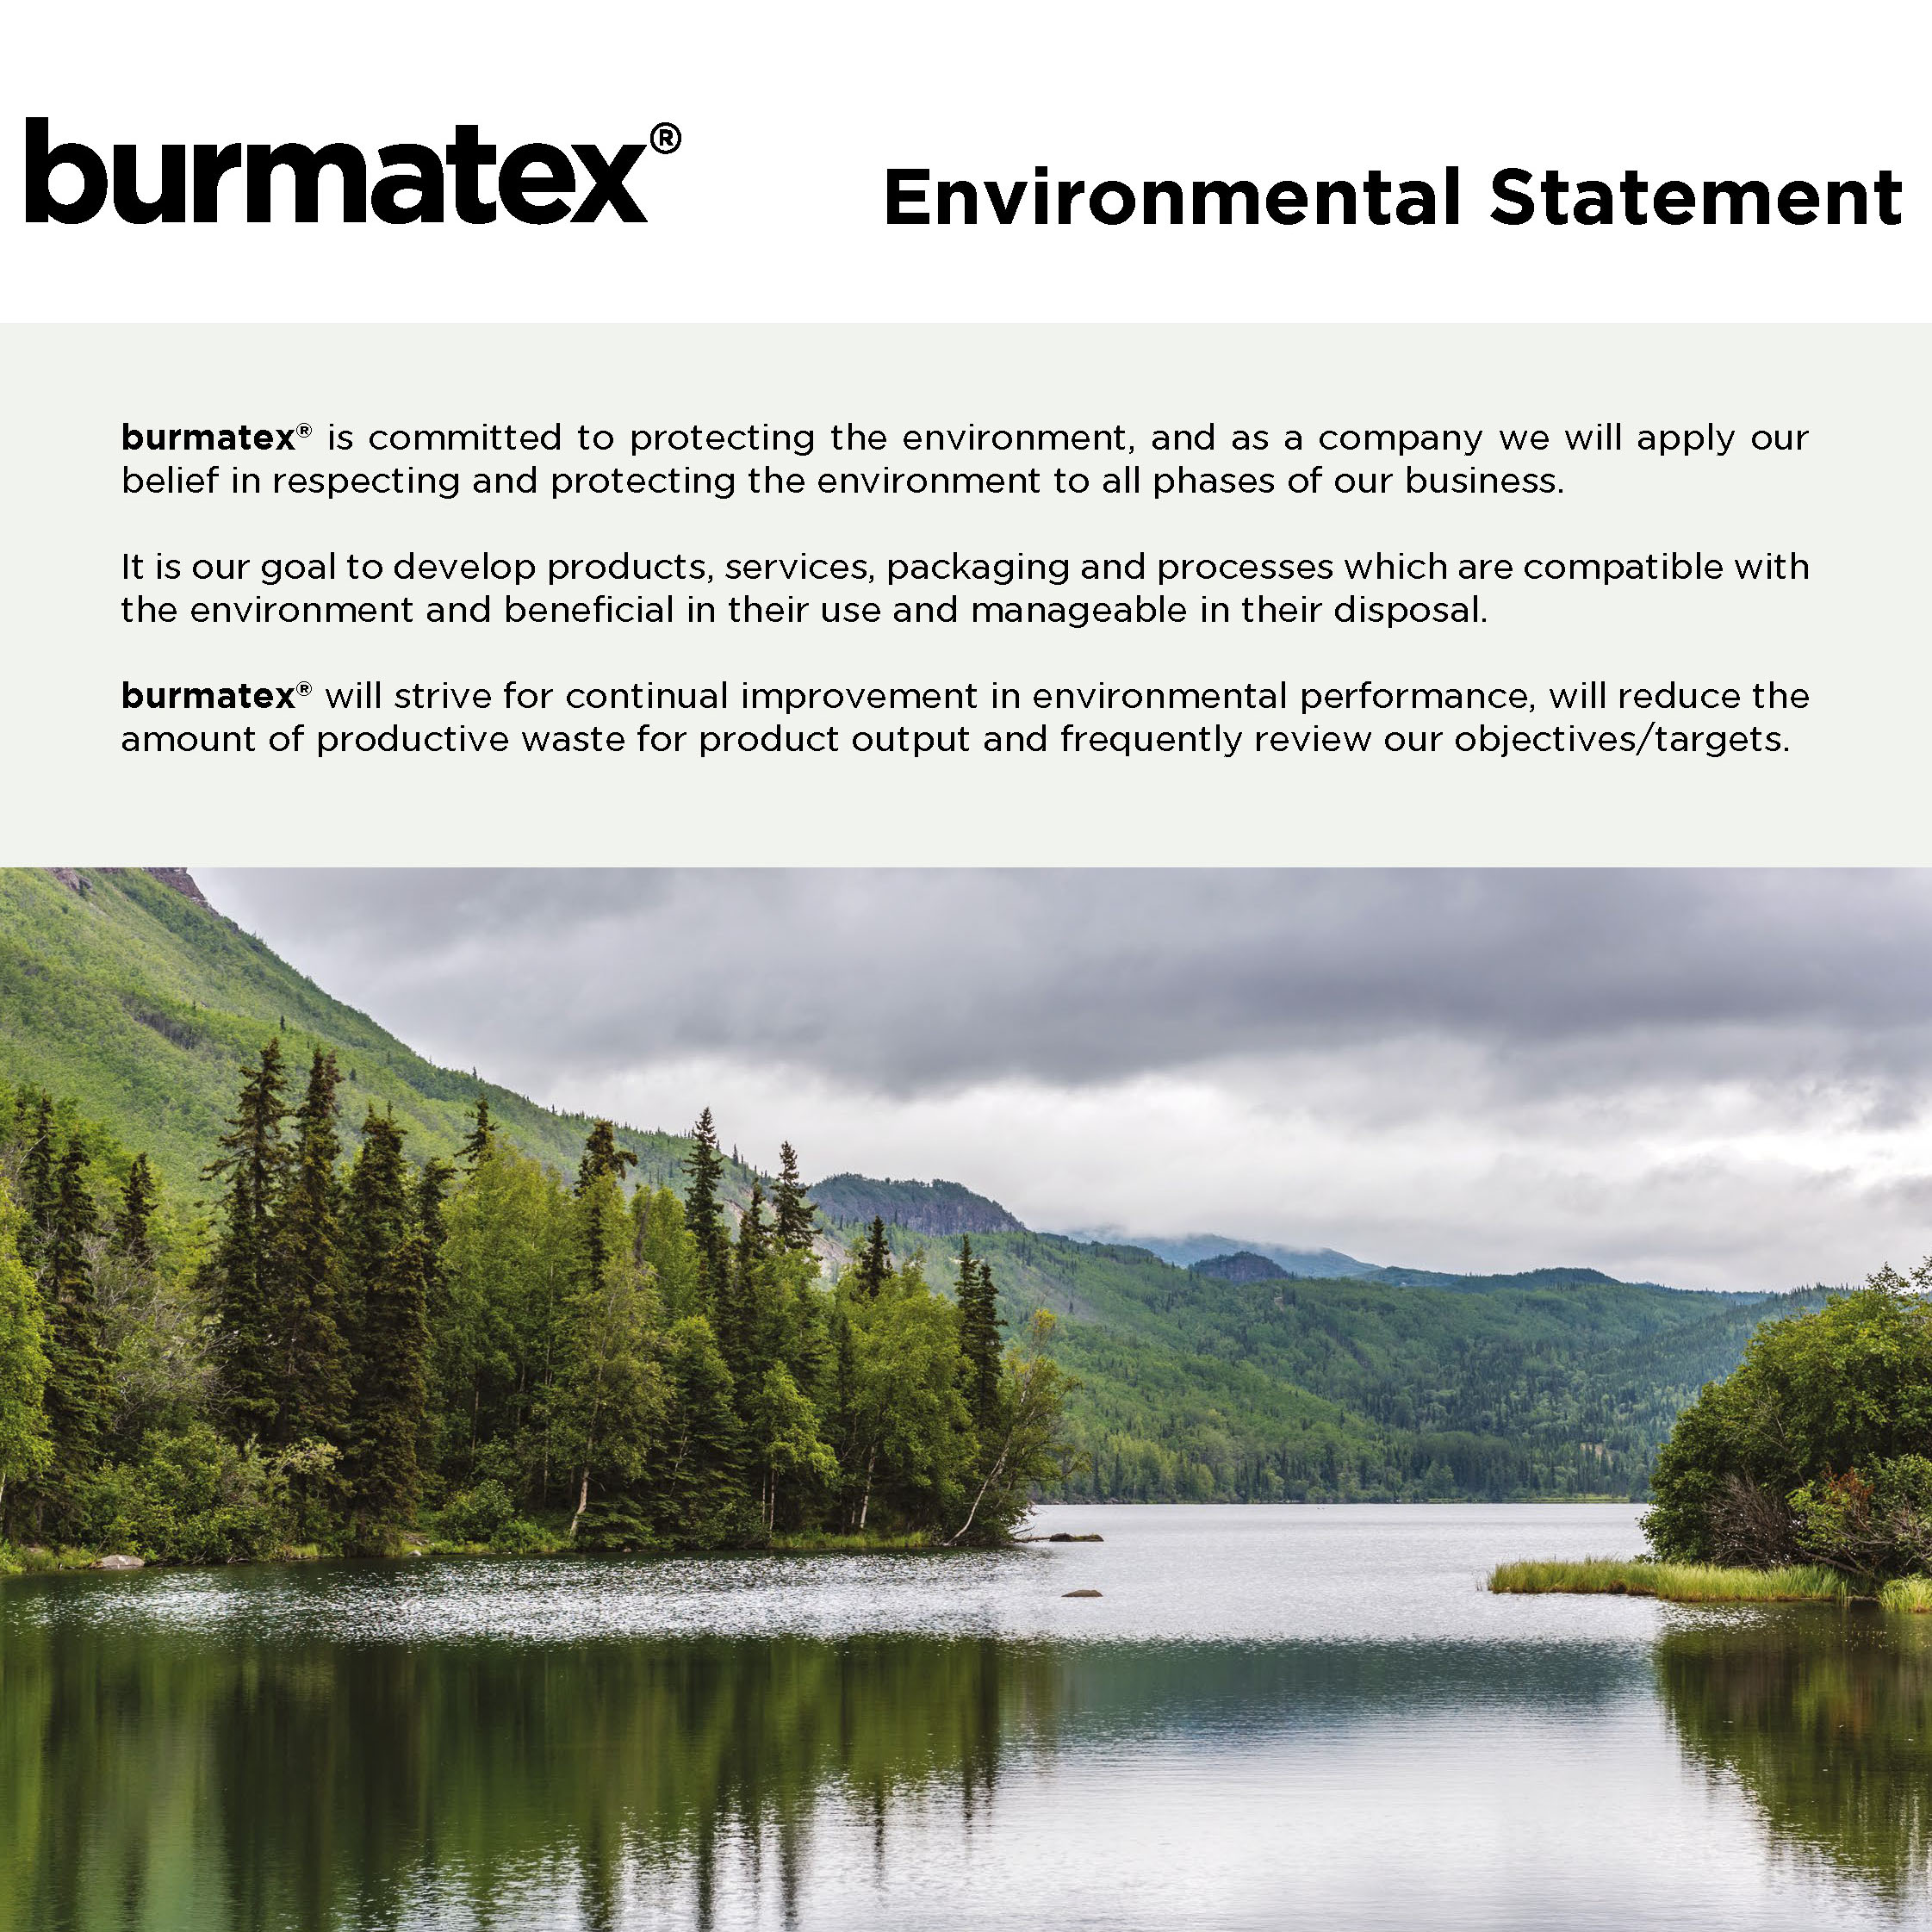 burmatex sustainability statement